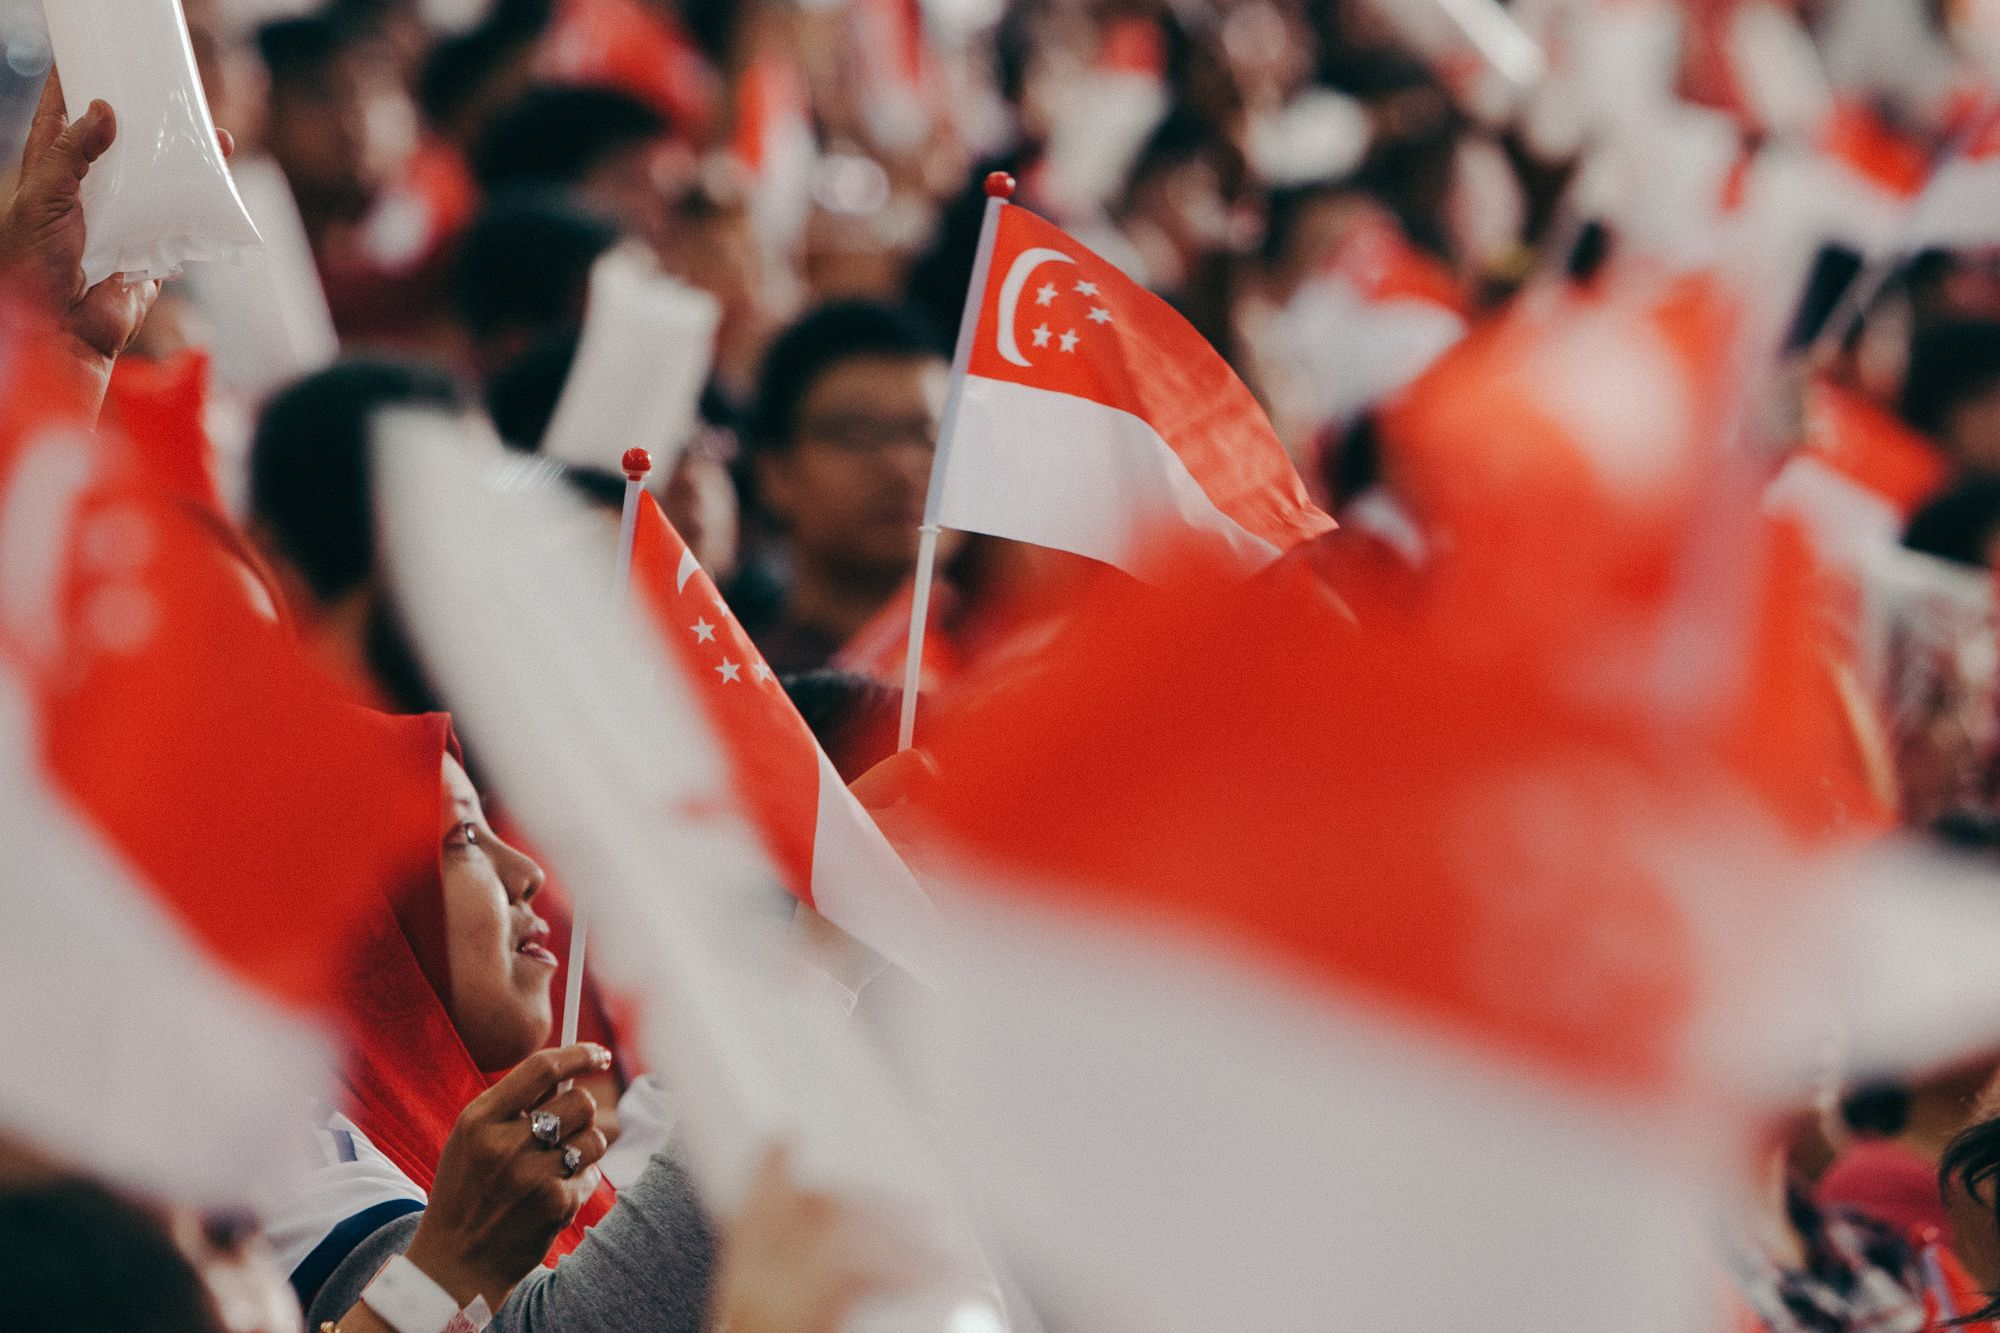 Singapore will be the most vaccinated country in the world against COVID 19